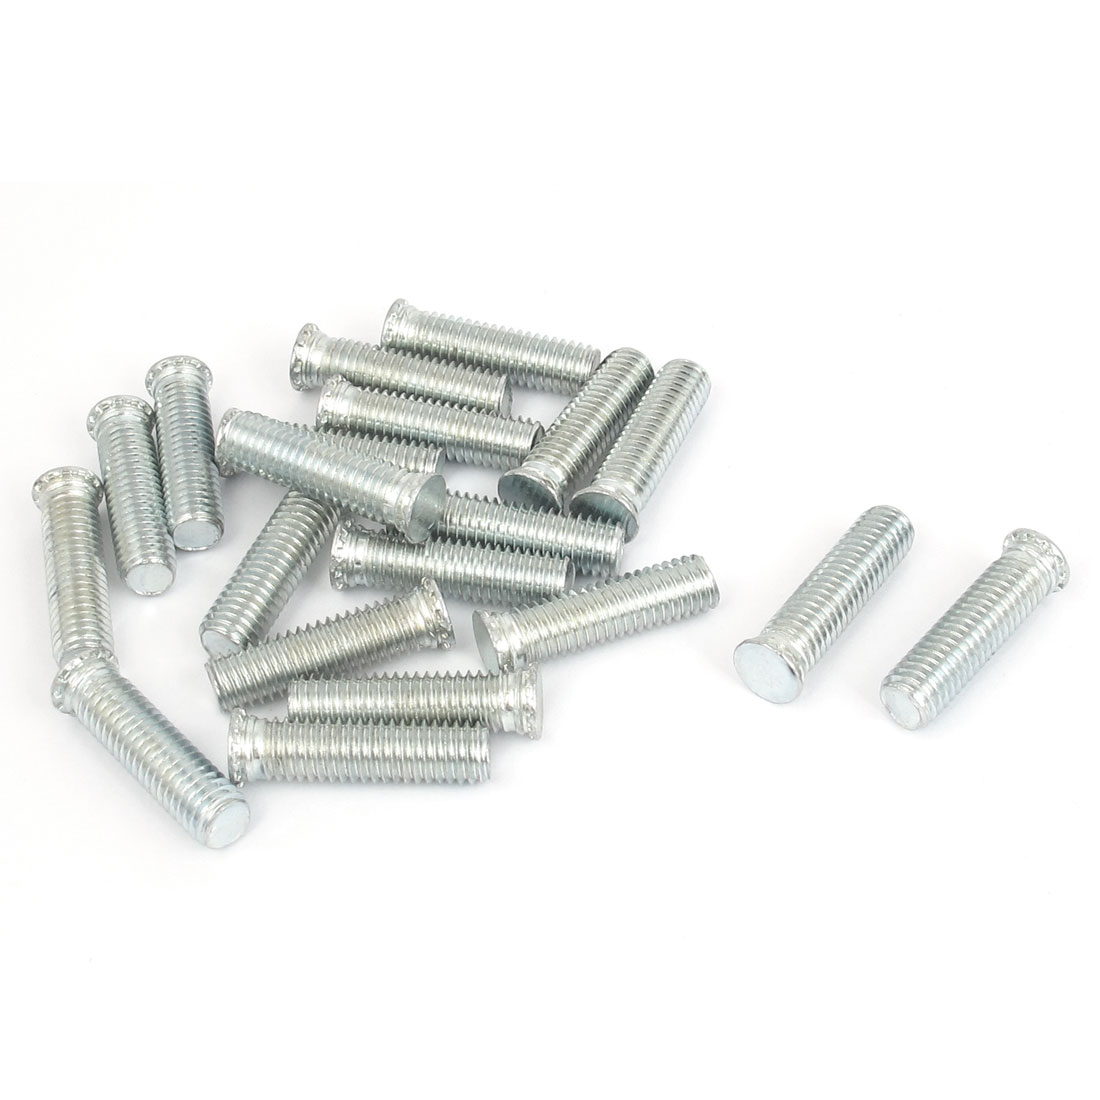 M8x30mm Zinc Plated Flush Head Self Clinching Threaded Studs Fastener 20pcs